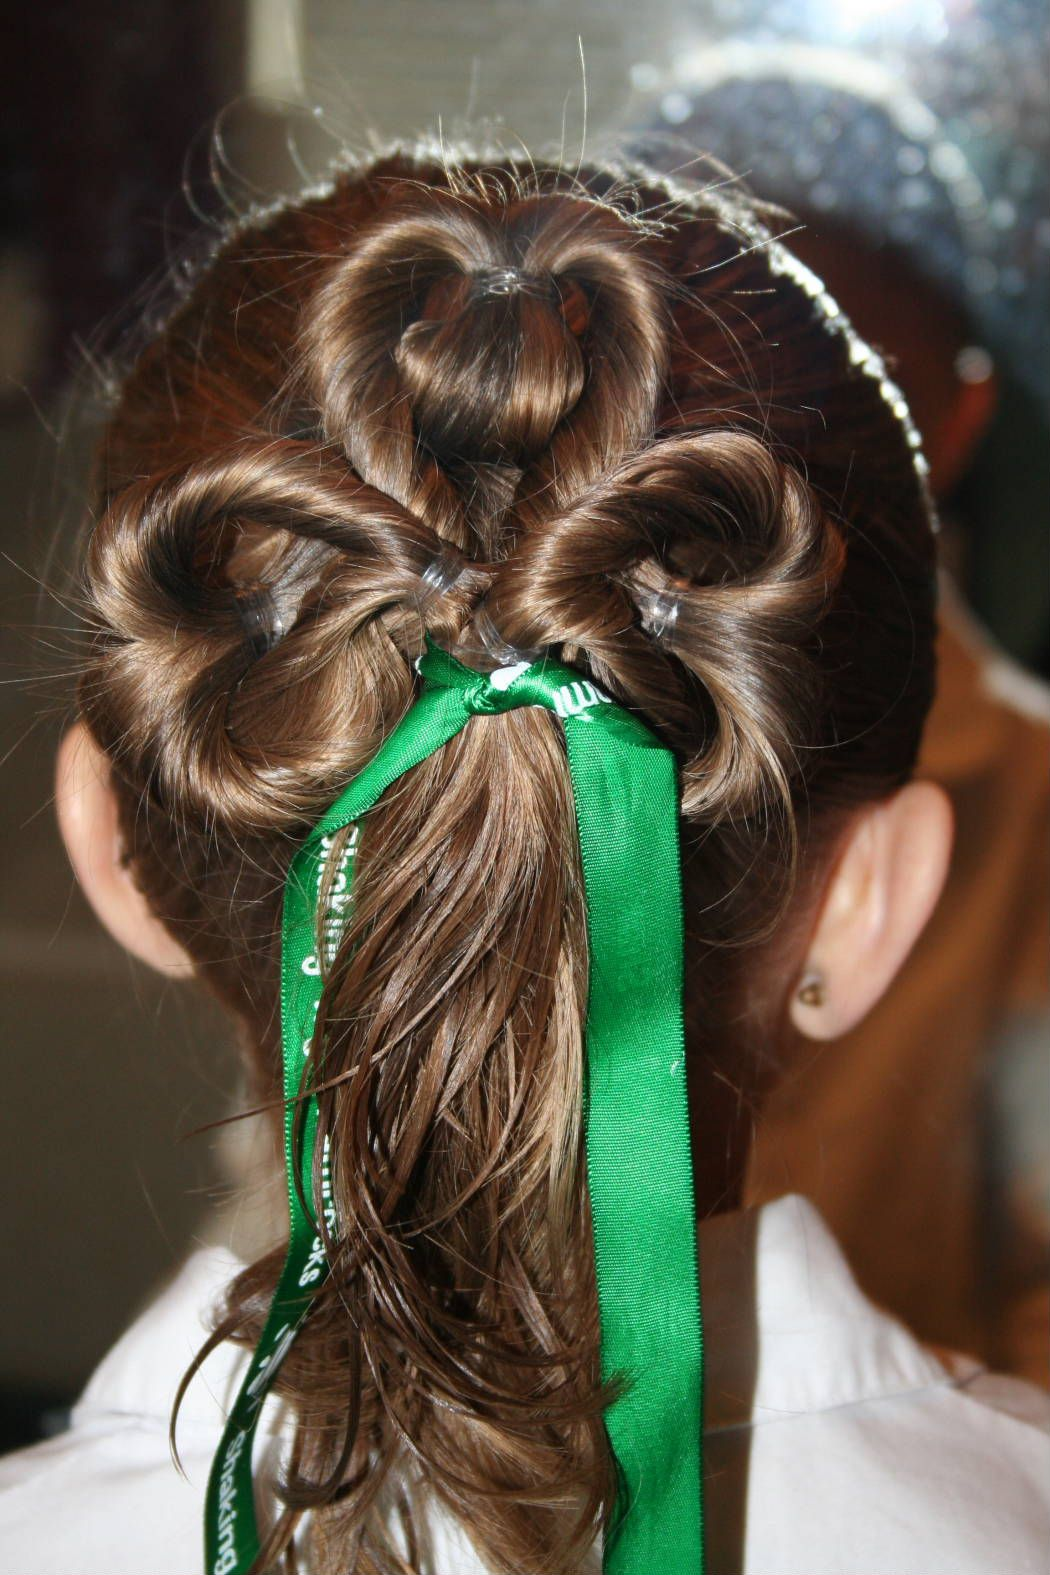 10 Days Of Green Three Leaf Clover Twists Hairstyle Living Rich With Coupons Hair Styles Shamrock Hairstyle Clover Hair